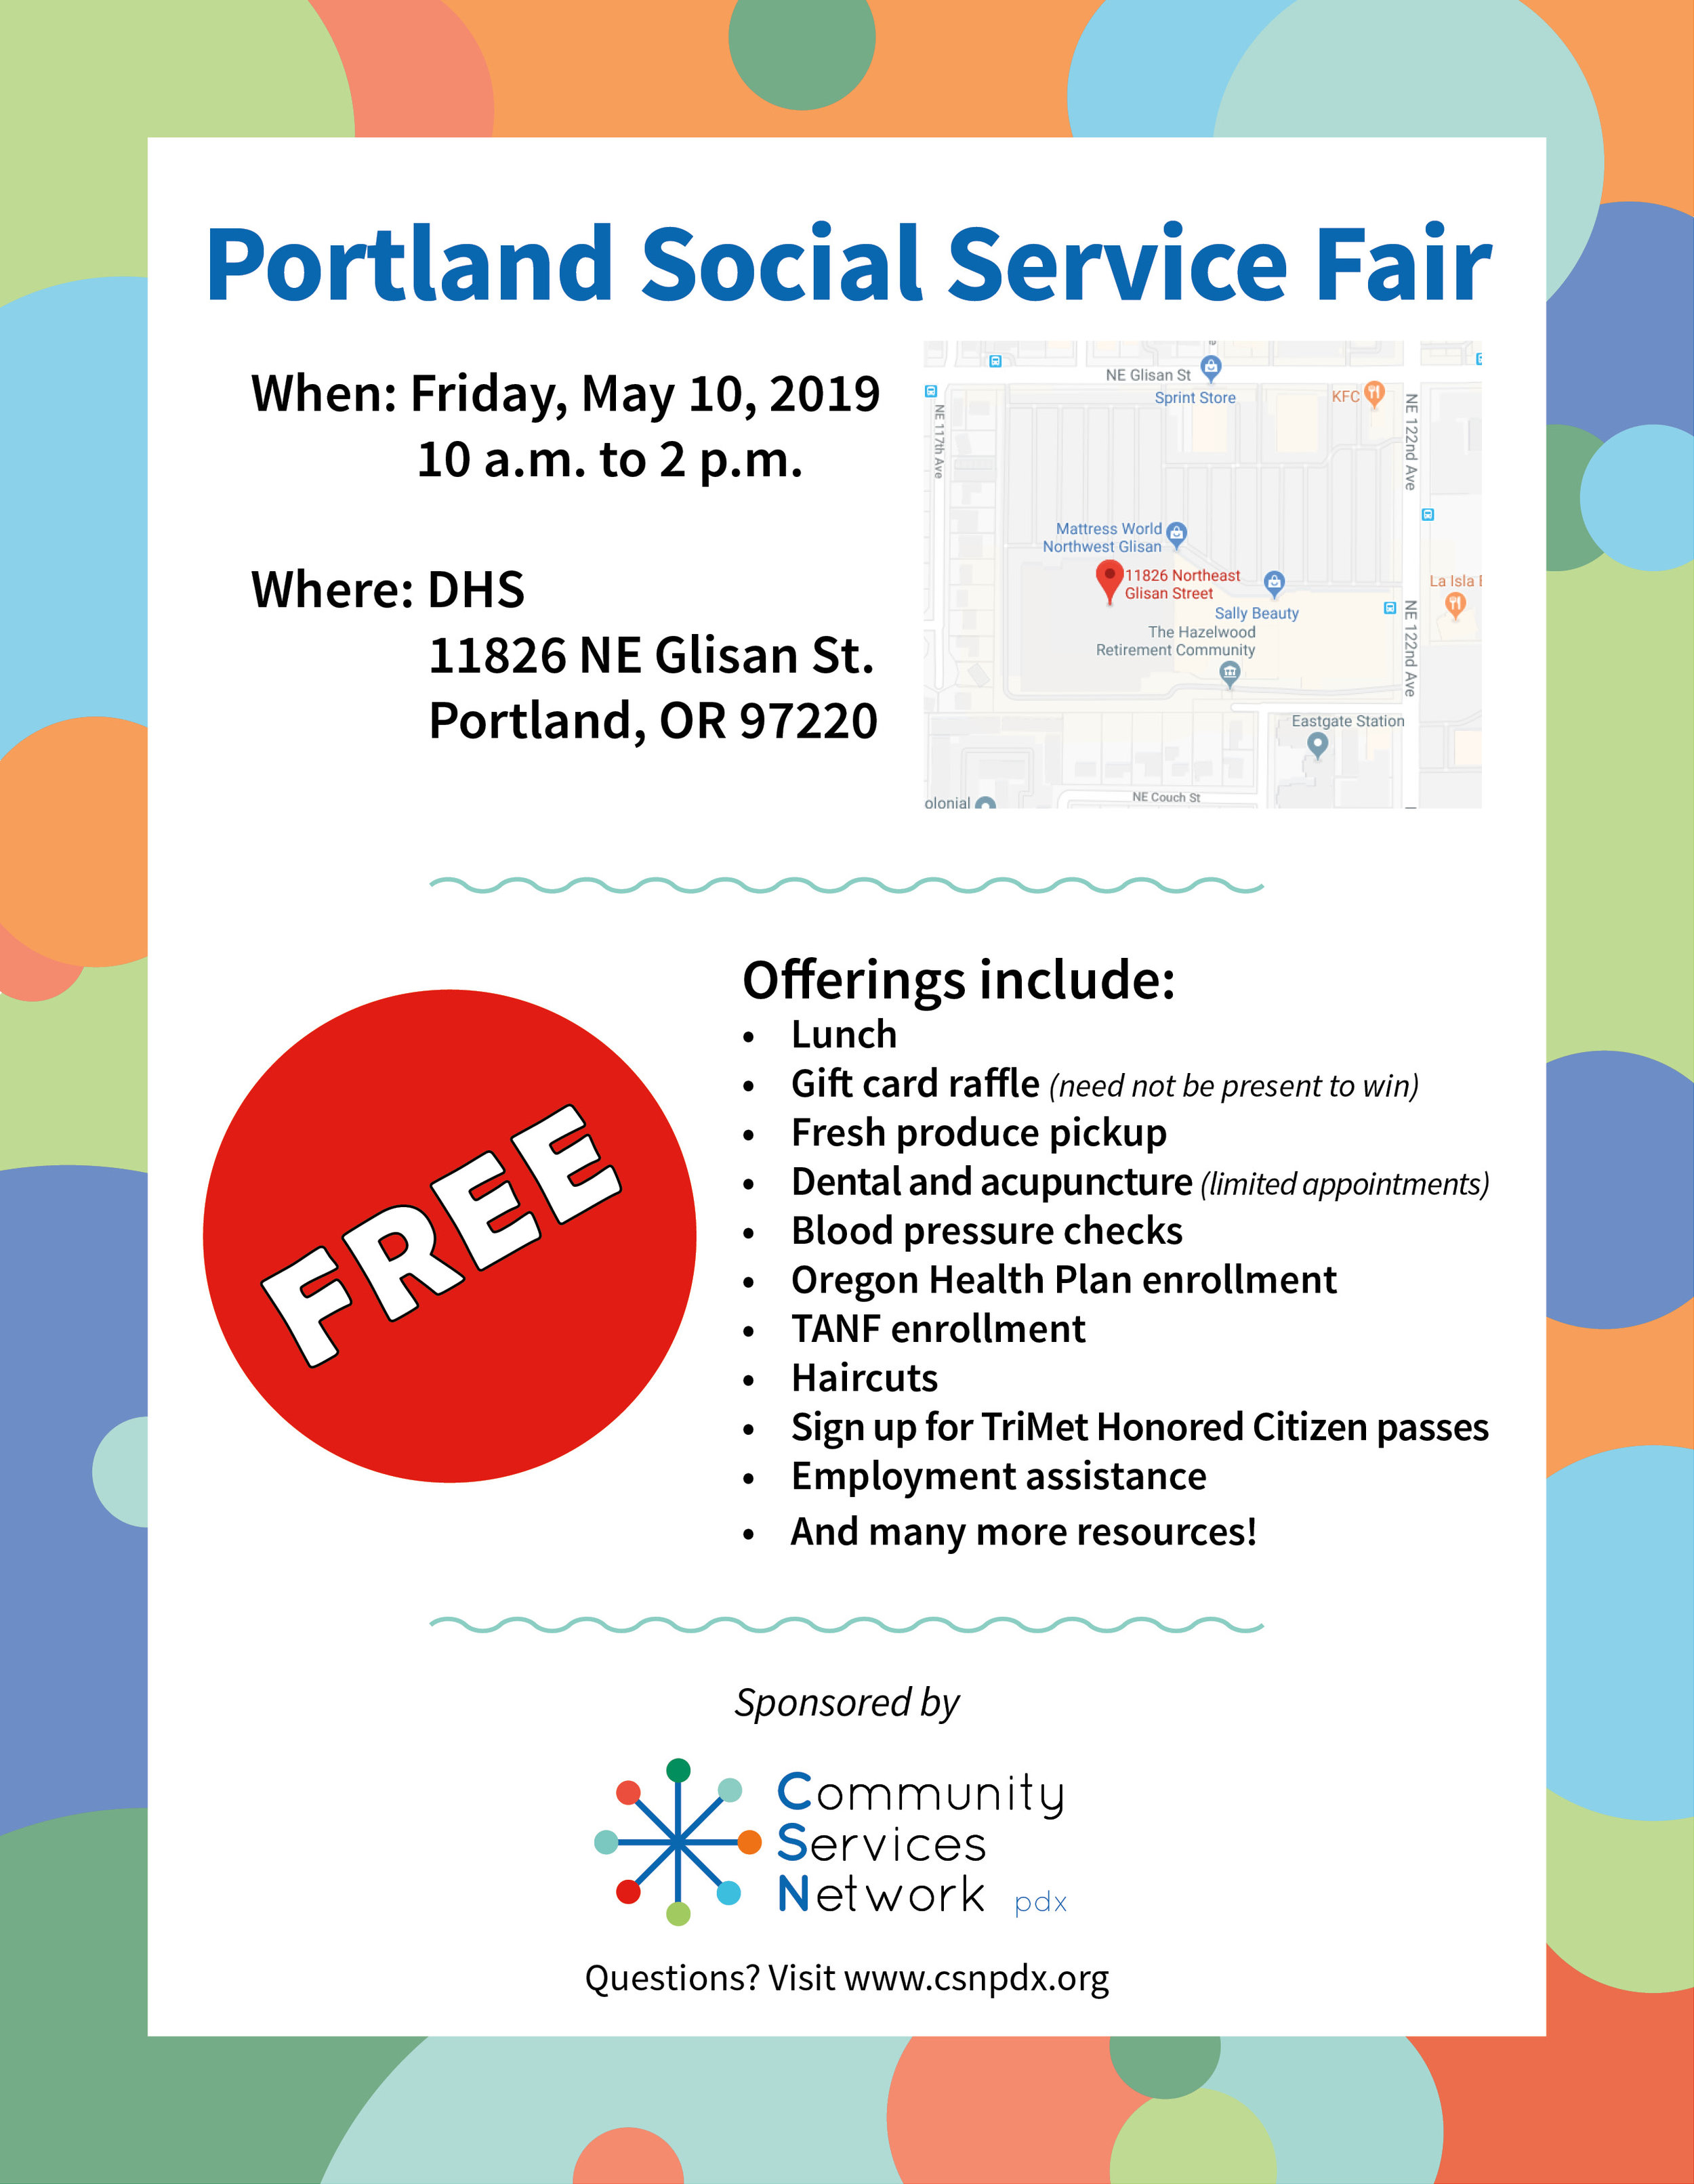 Social Service Fair #3 Flyer - 8.5x11 - May 10, 2019 - print.jpg